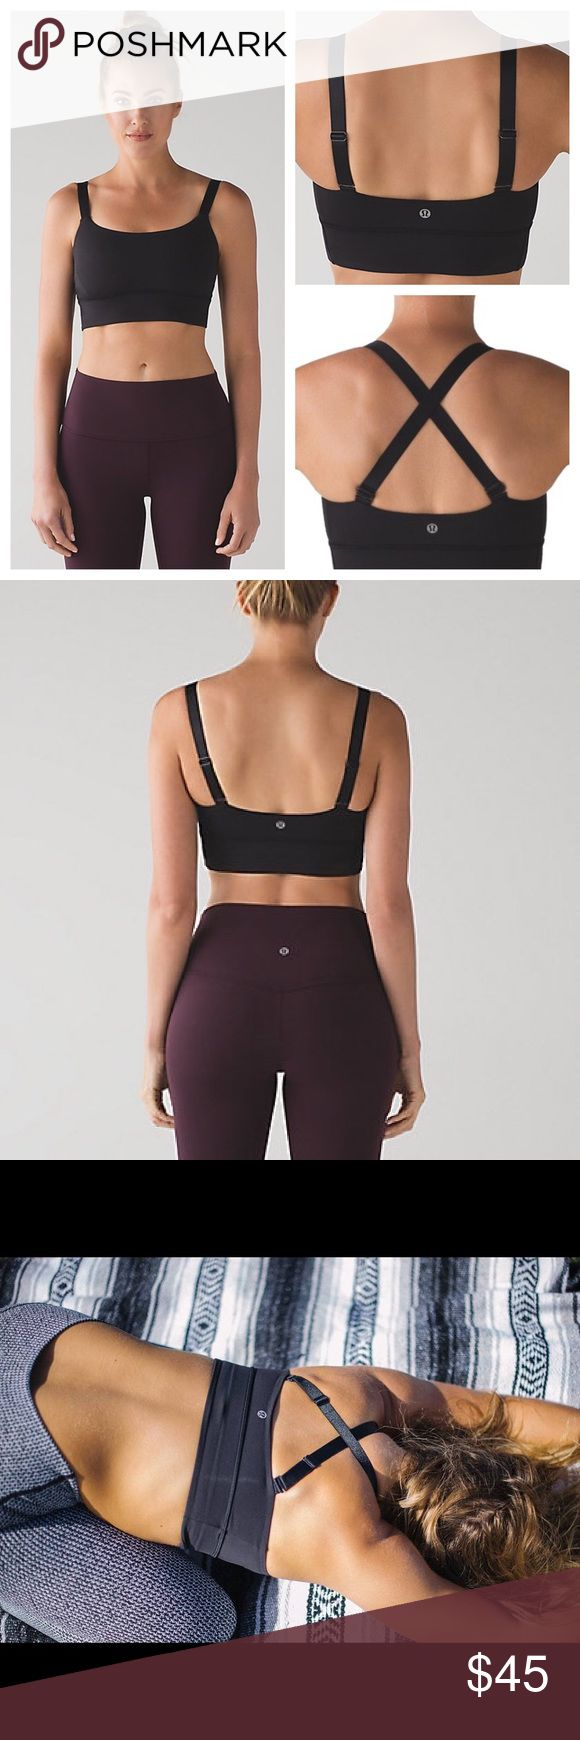 NWT Lululemon Both Ways Padded Convertible Bra Convertible Bra brand new with tags. No flaws. Luxtreme material. Smoke free pet friendly home. lululemon athletica Intimates & Sleepwear Bras